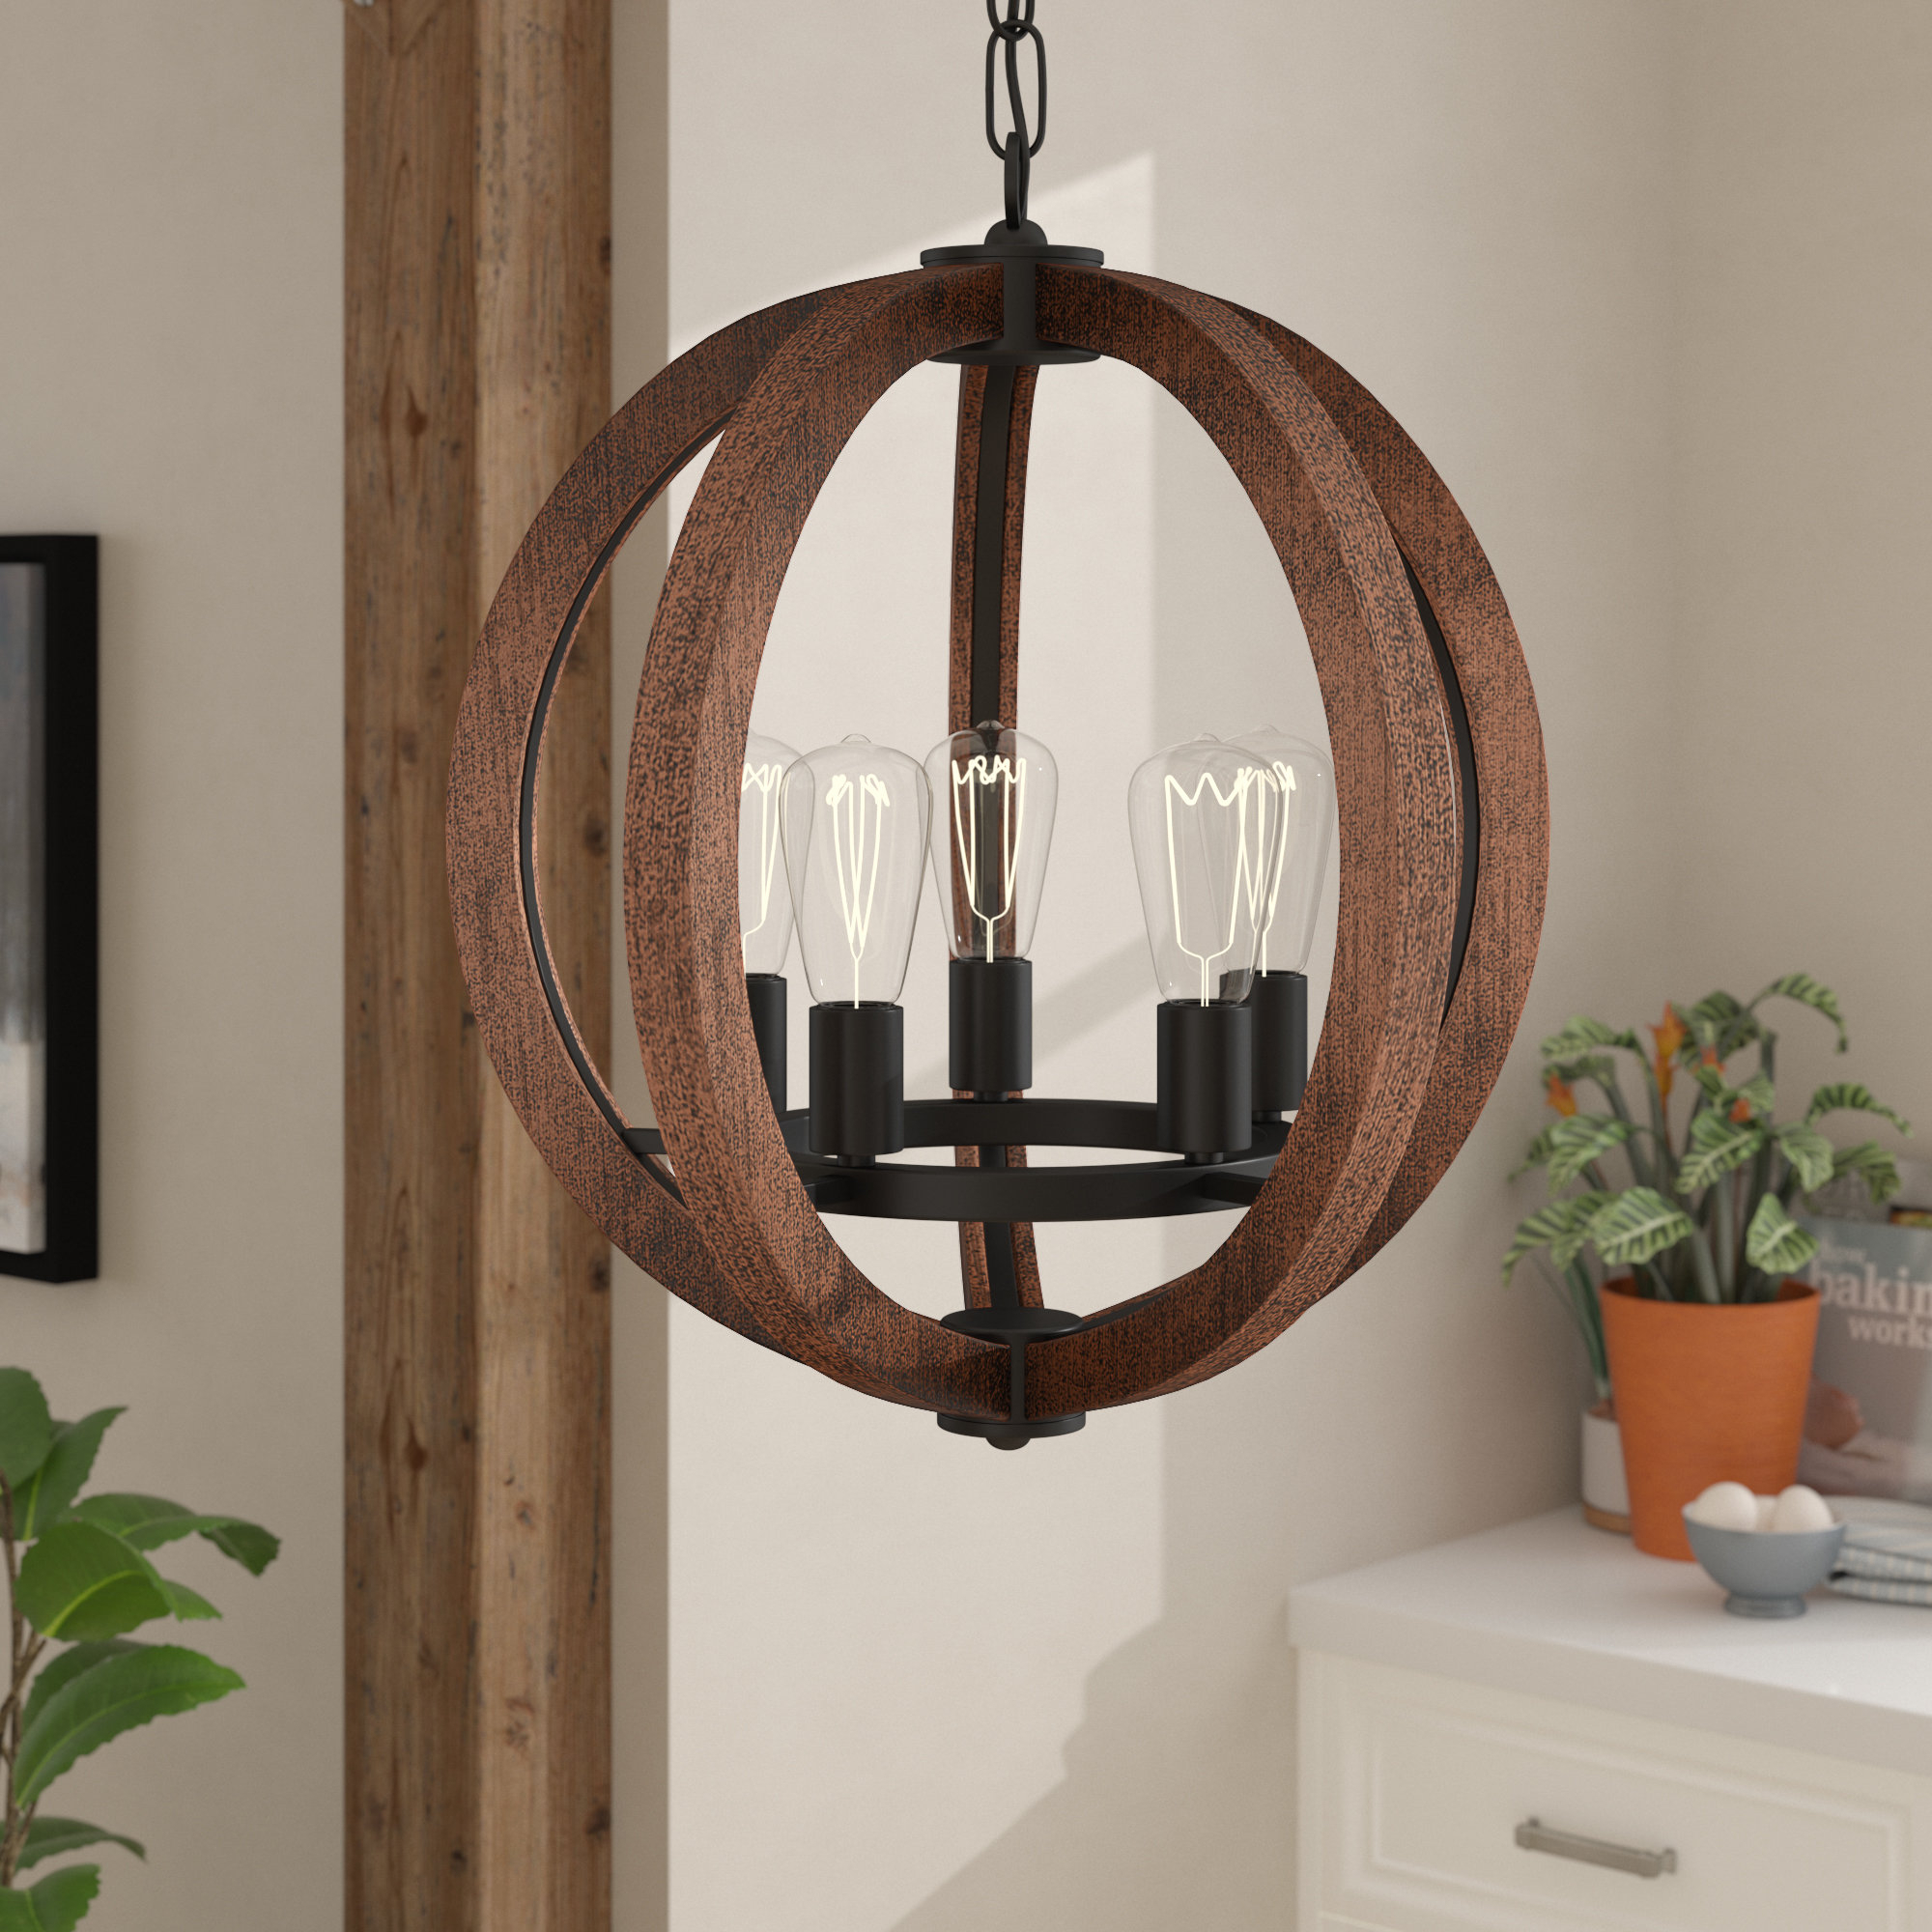 Orly 5 Light Globe Chandelier Pertaining To Filipe Globe Chandeliers (View 15 of 30)